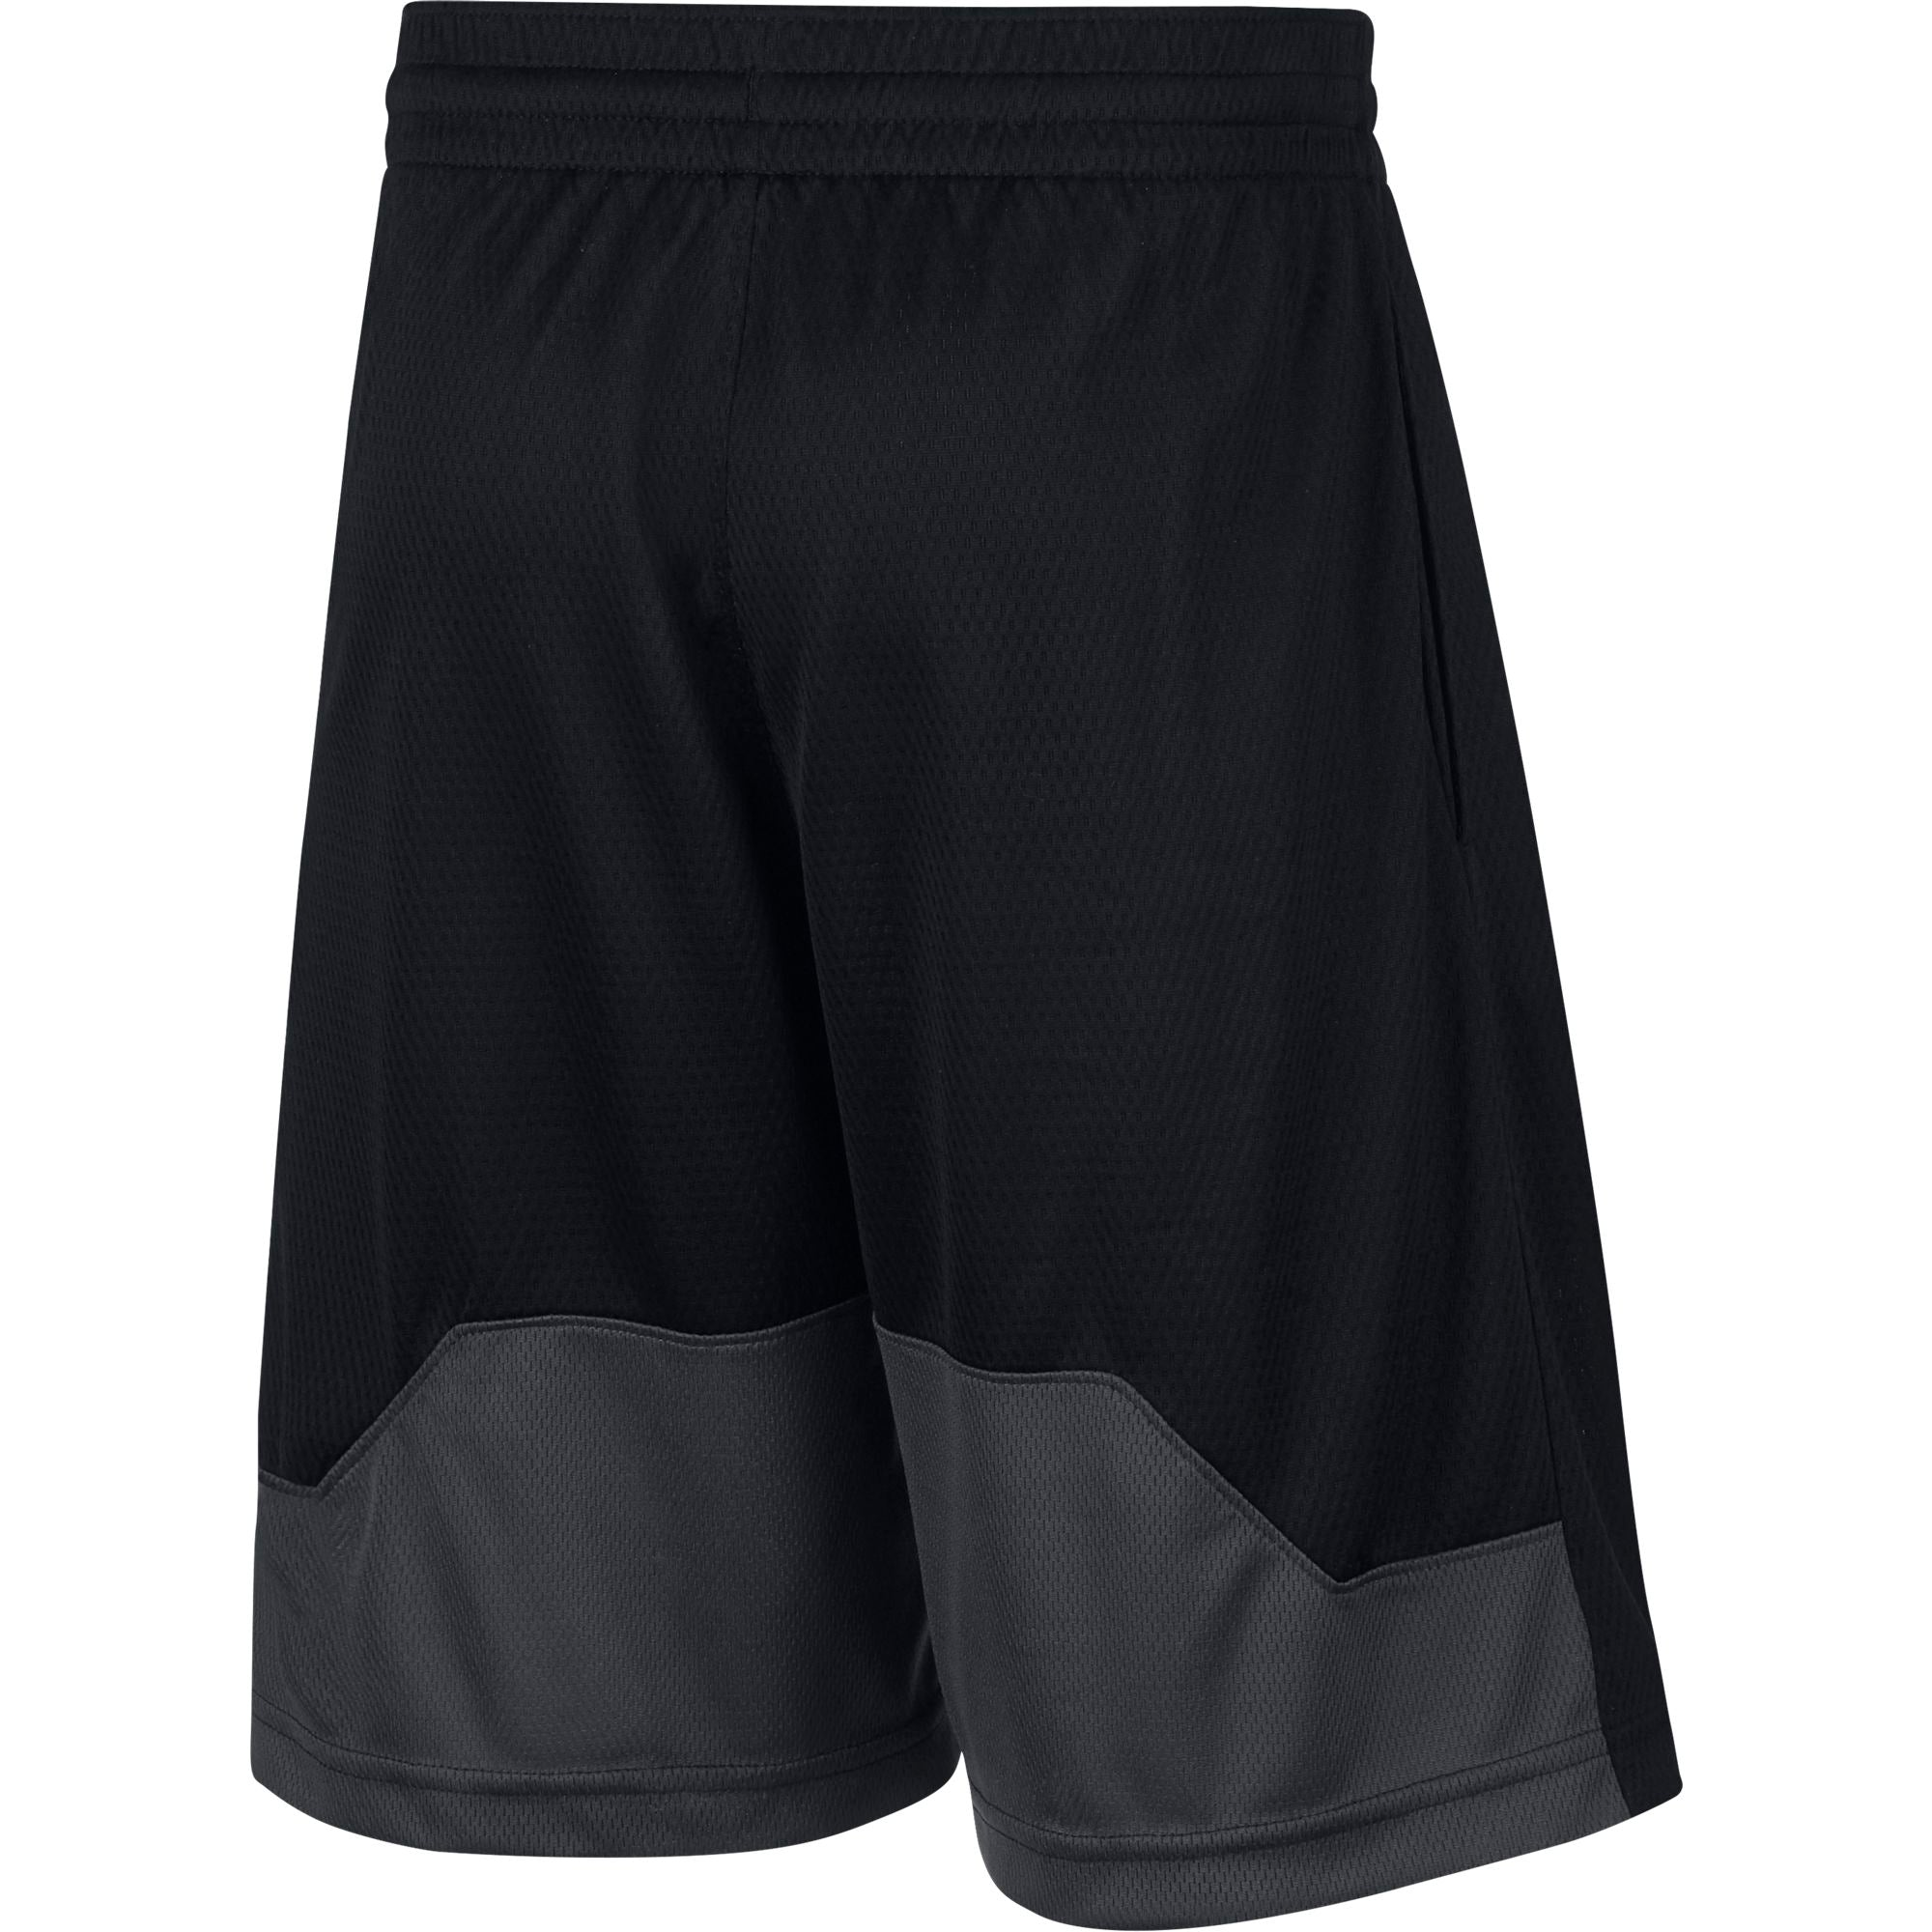 Nike Kids Dry Fit Basketball Shorts - Black/Anthracite/White